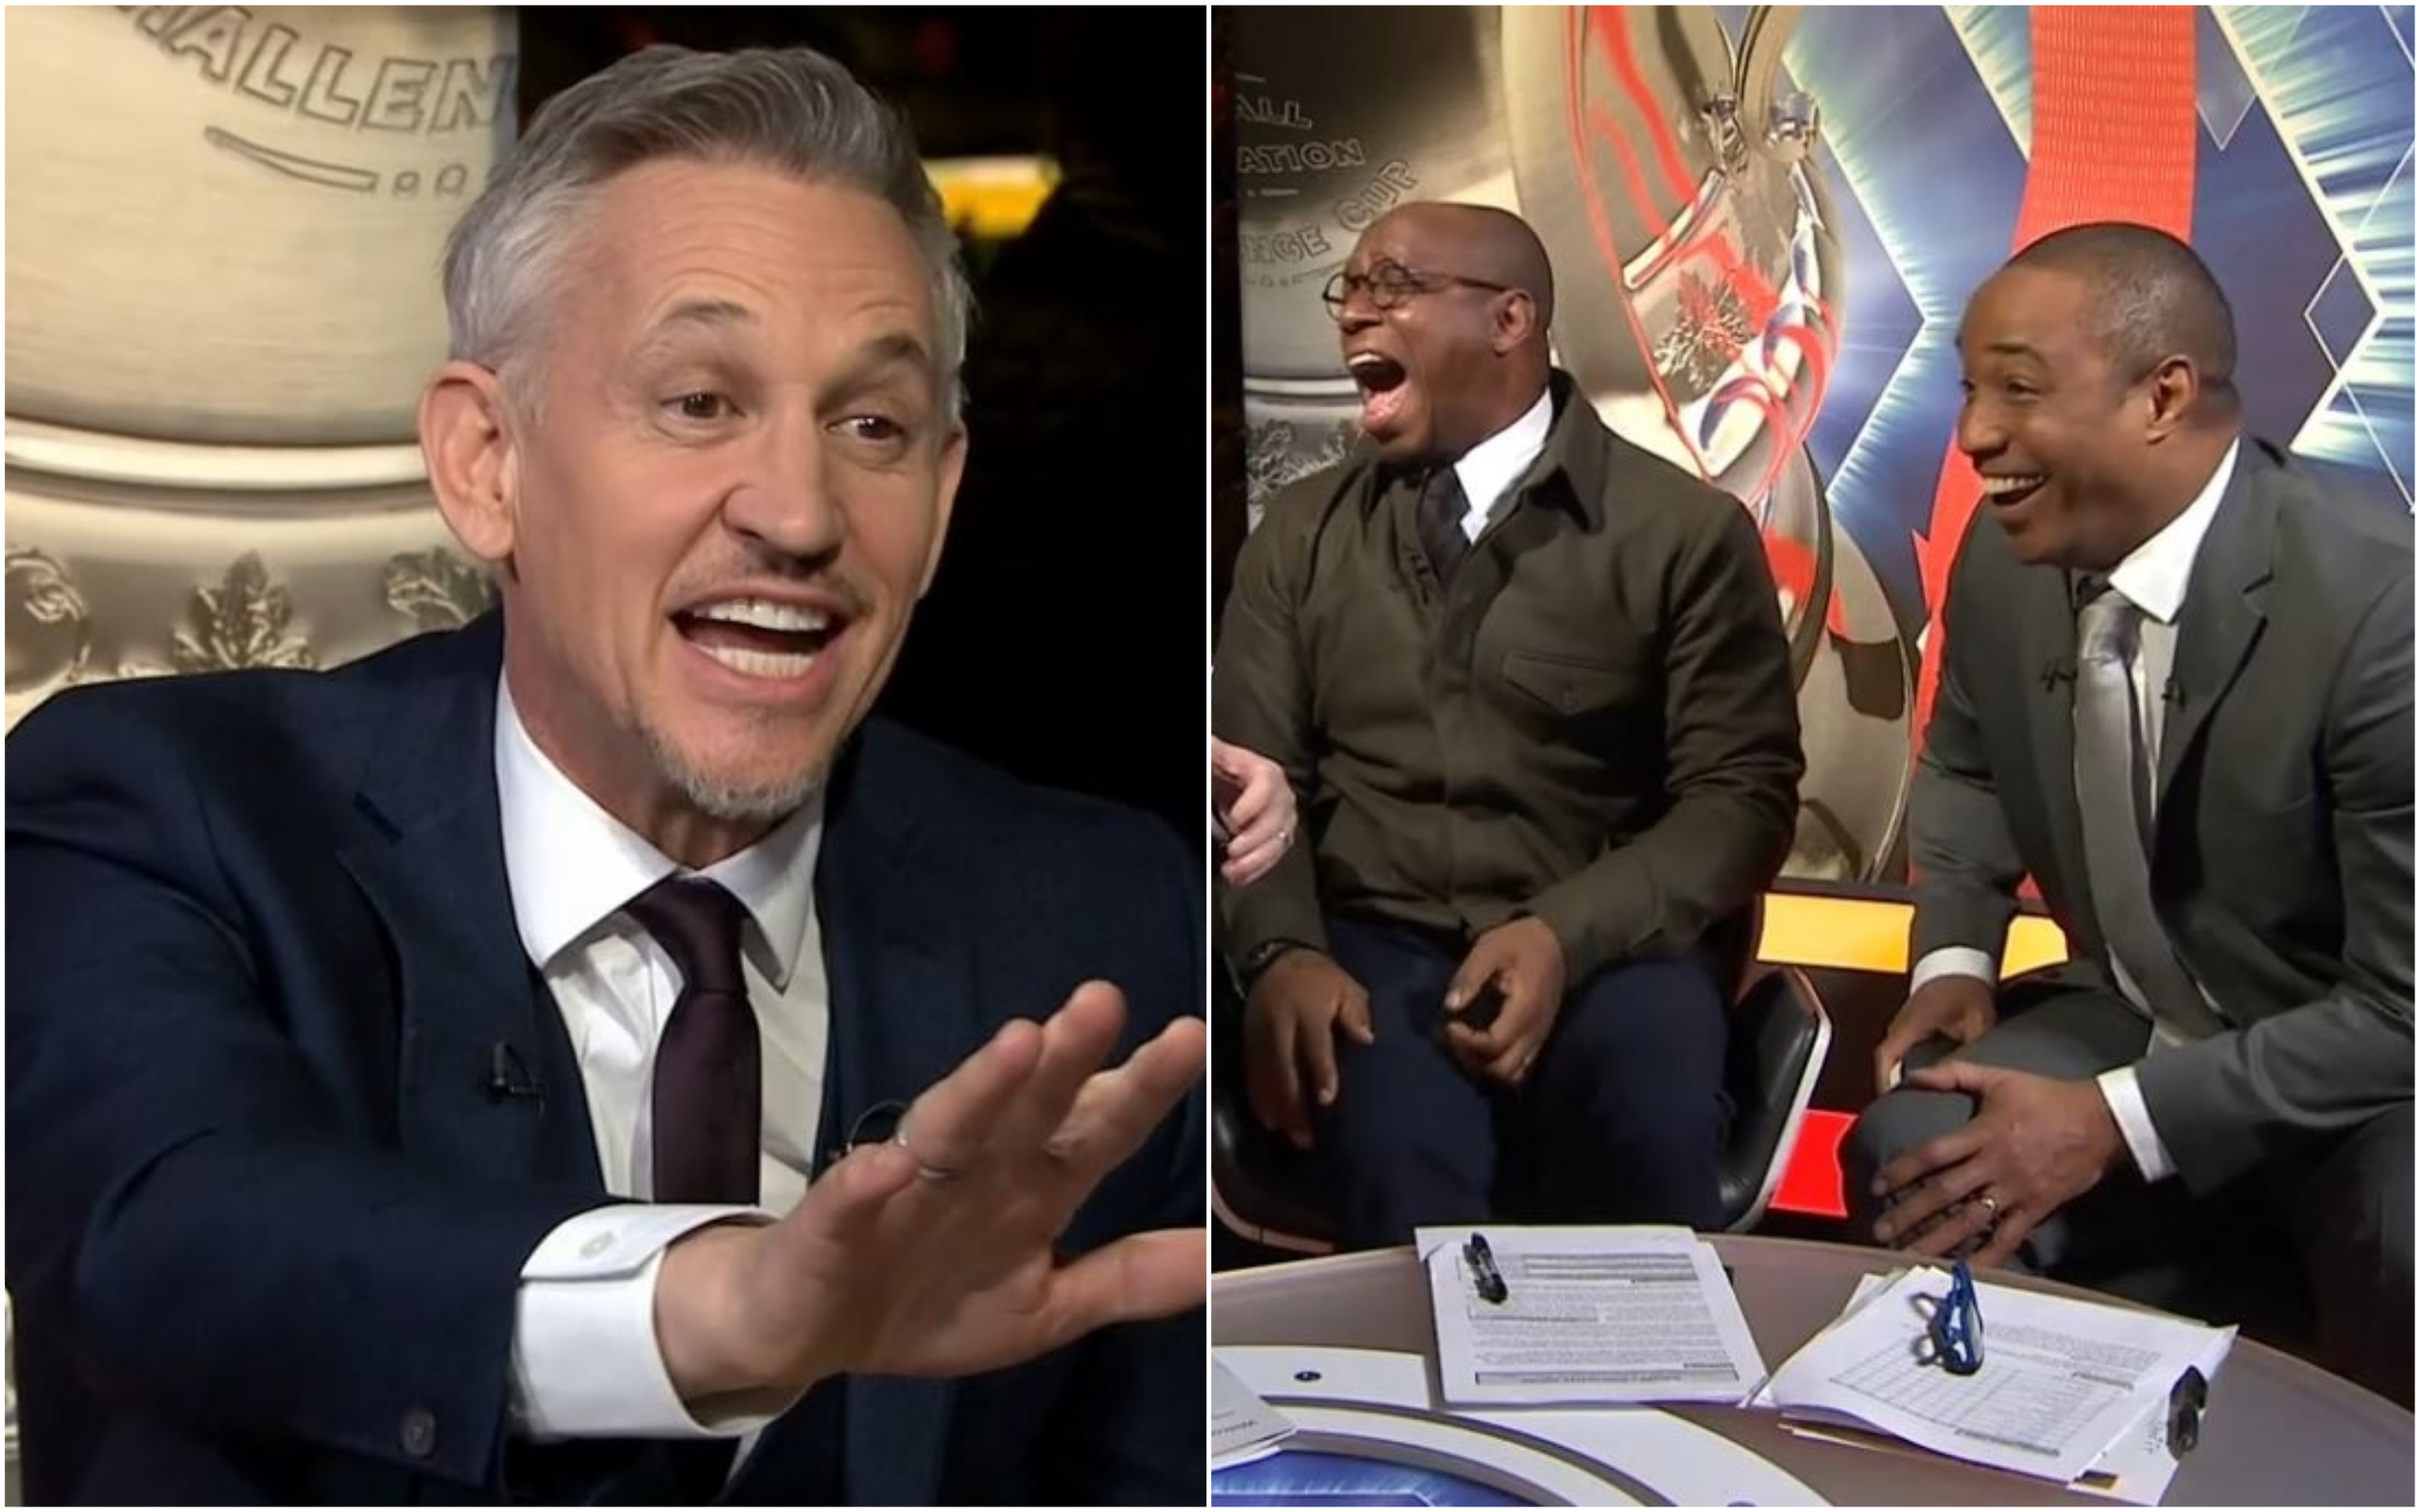 Gary Lineker rinses Paul Ince on live TV over his Ole Gunnar Solskjaer and Manchester United comments